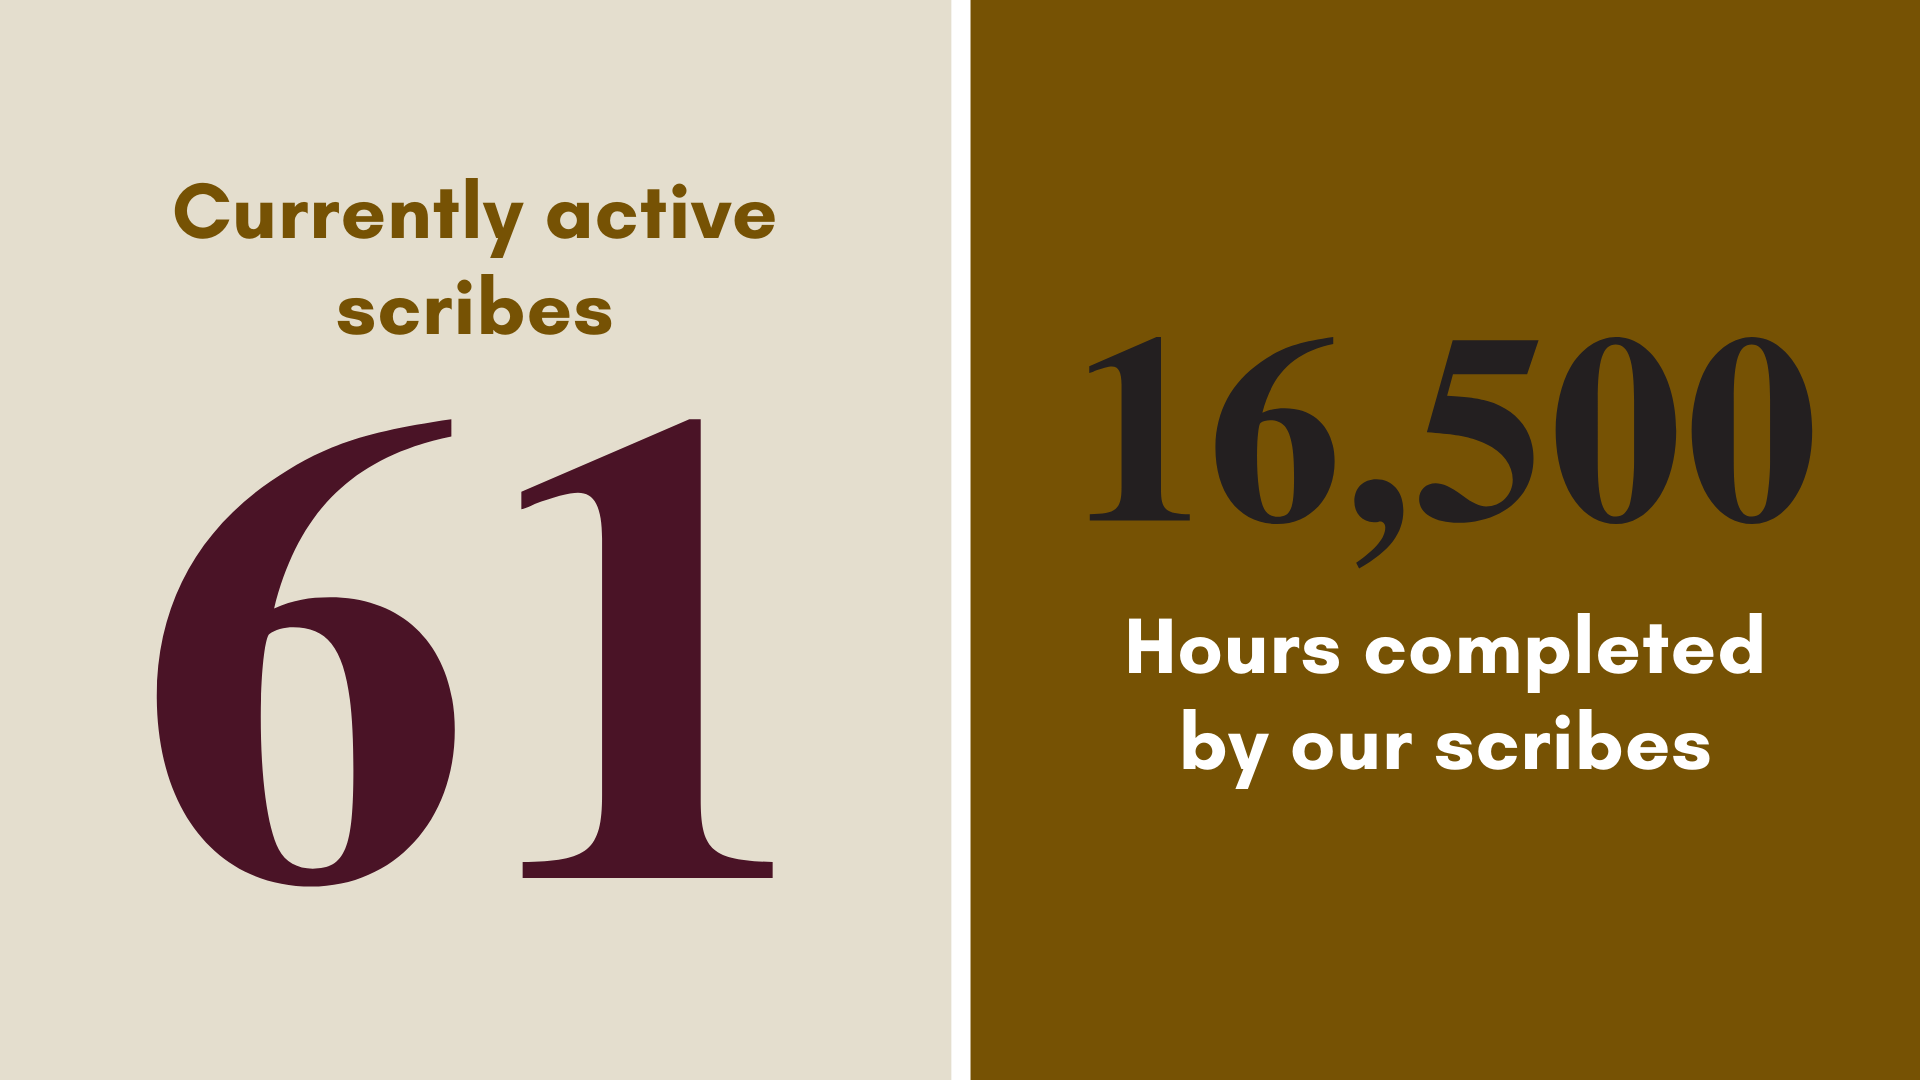 We have 61 active scribes, and our scribes worked for a total of 16,500 hours